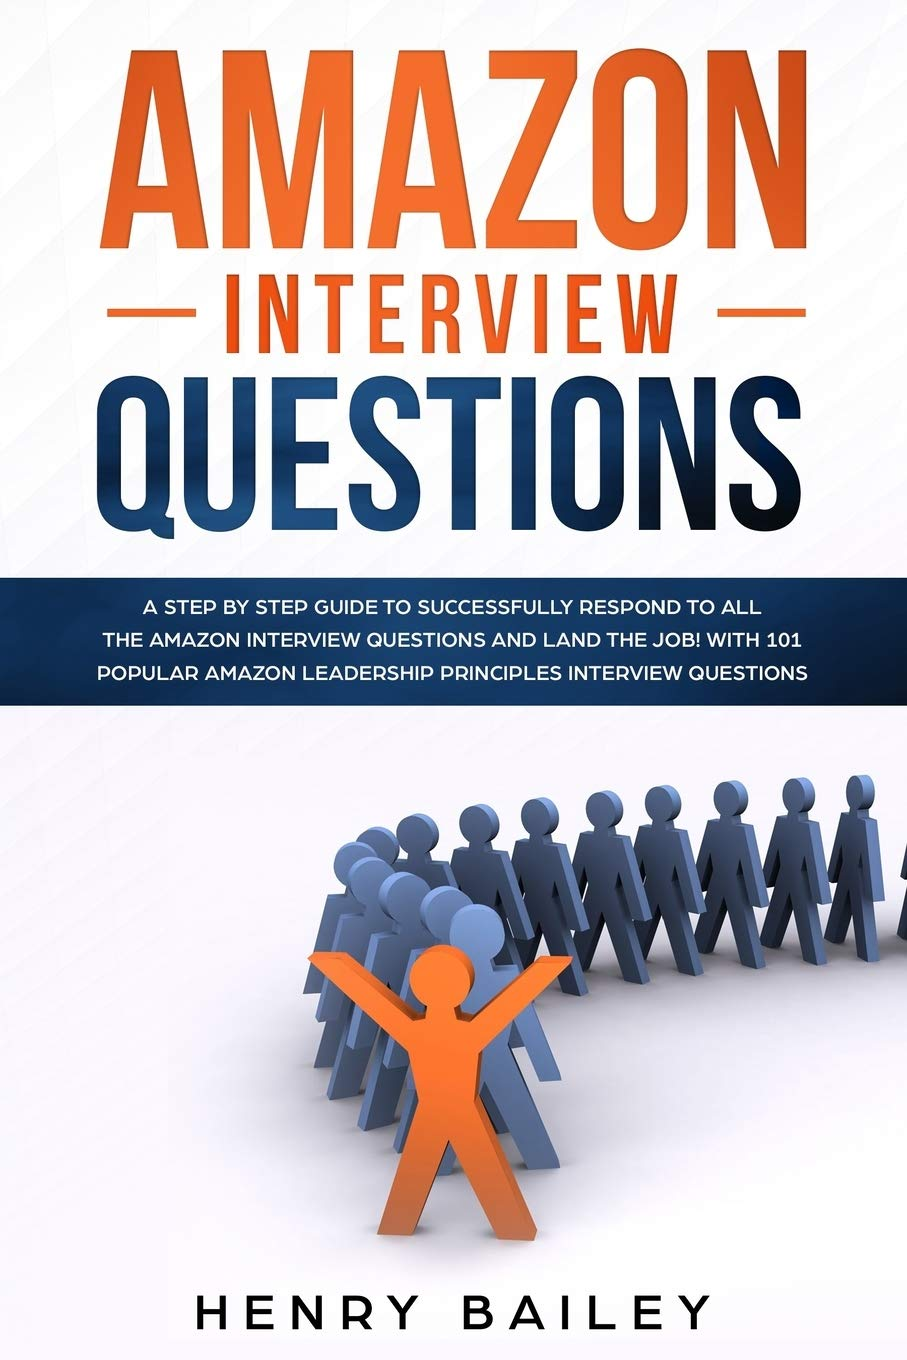 Amazon Interview Questions A Step By Step Guide to Successfully ...